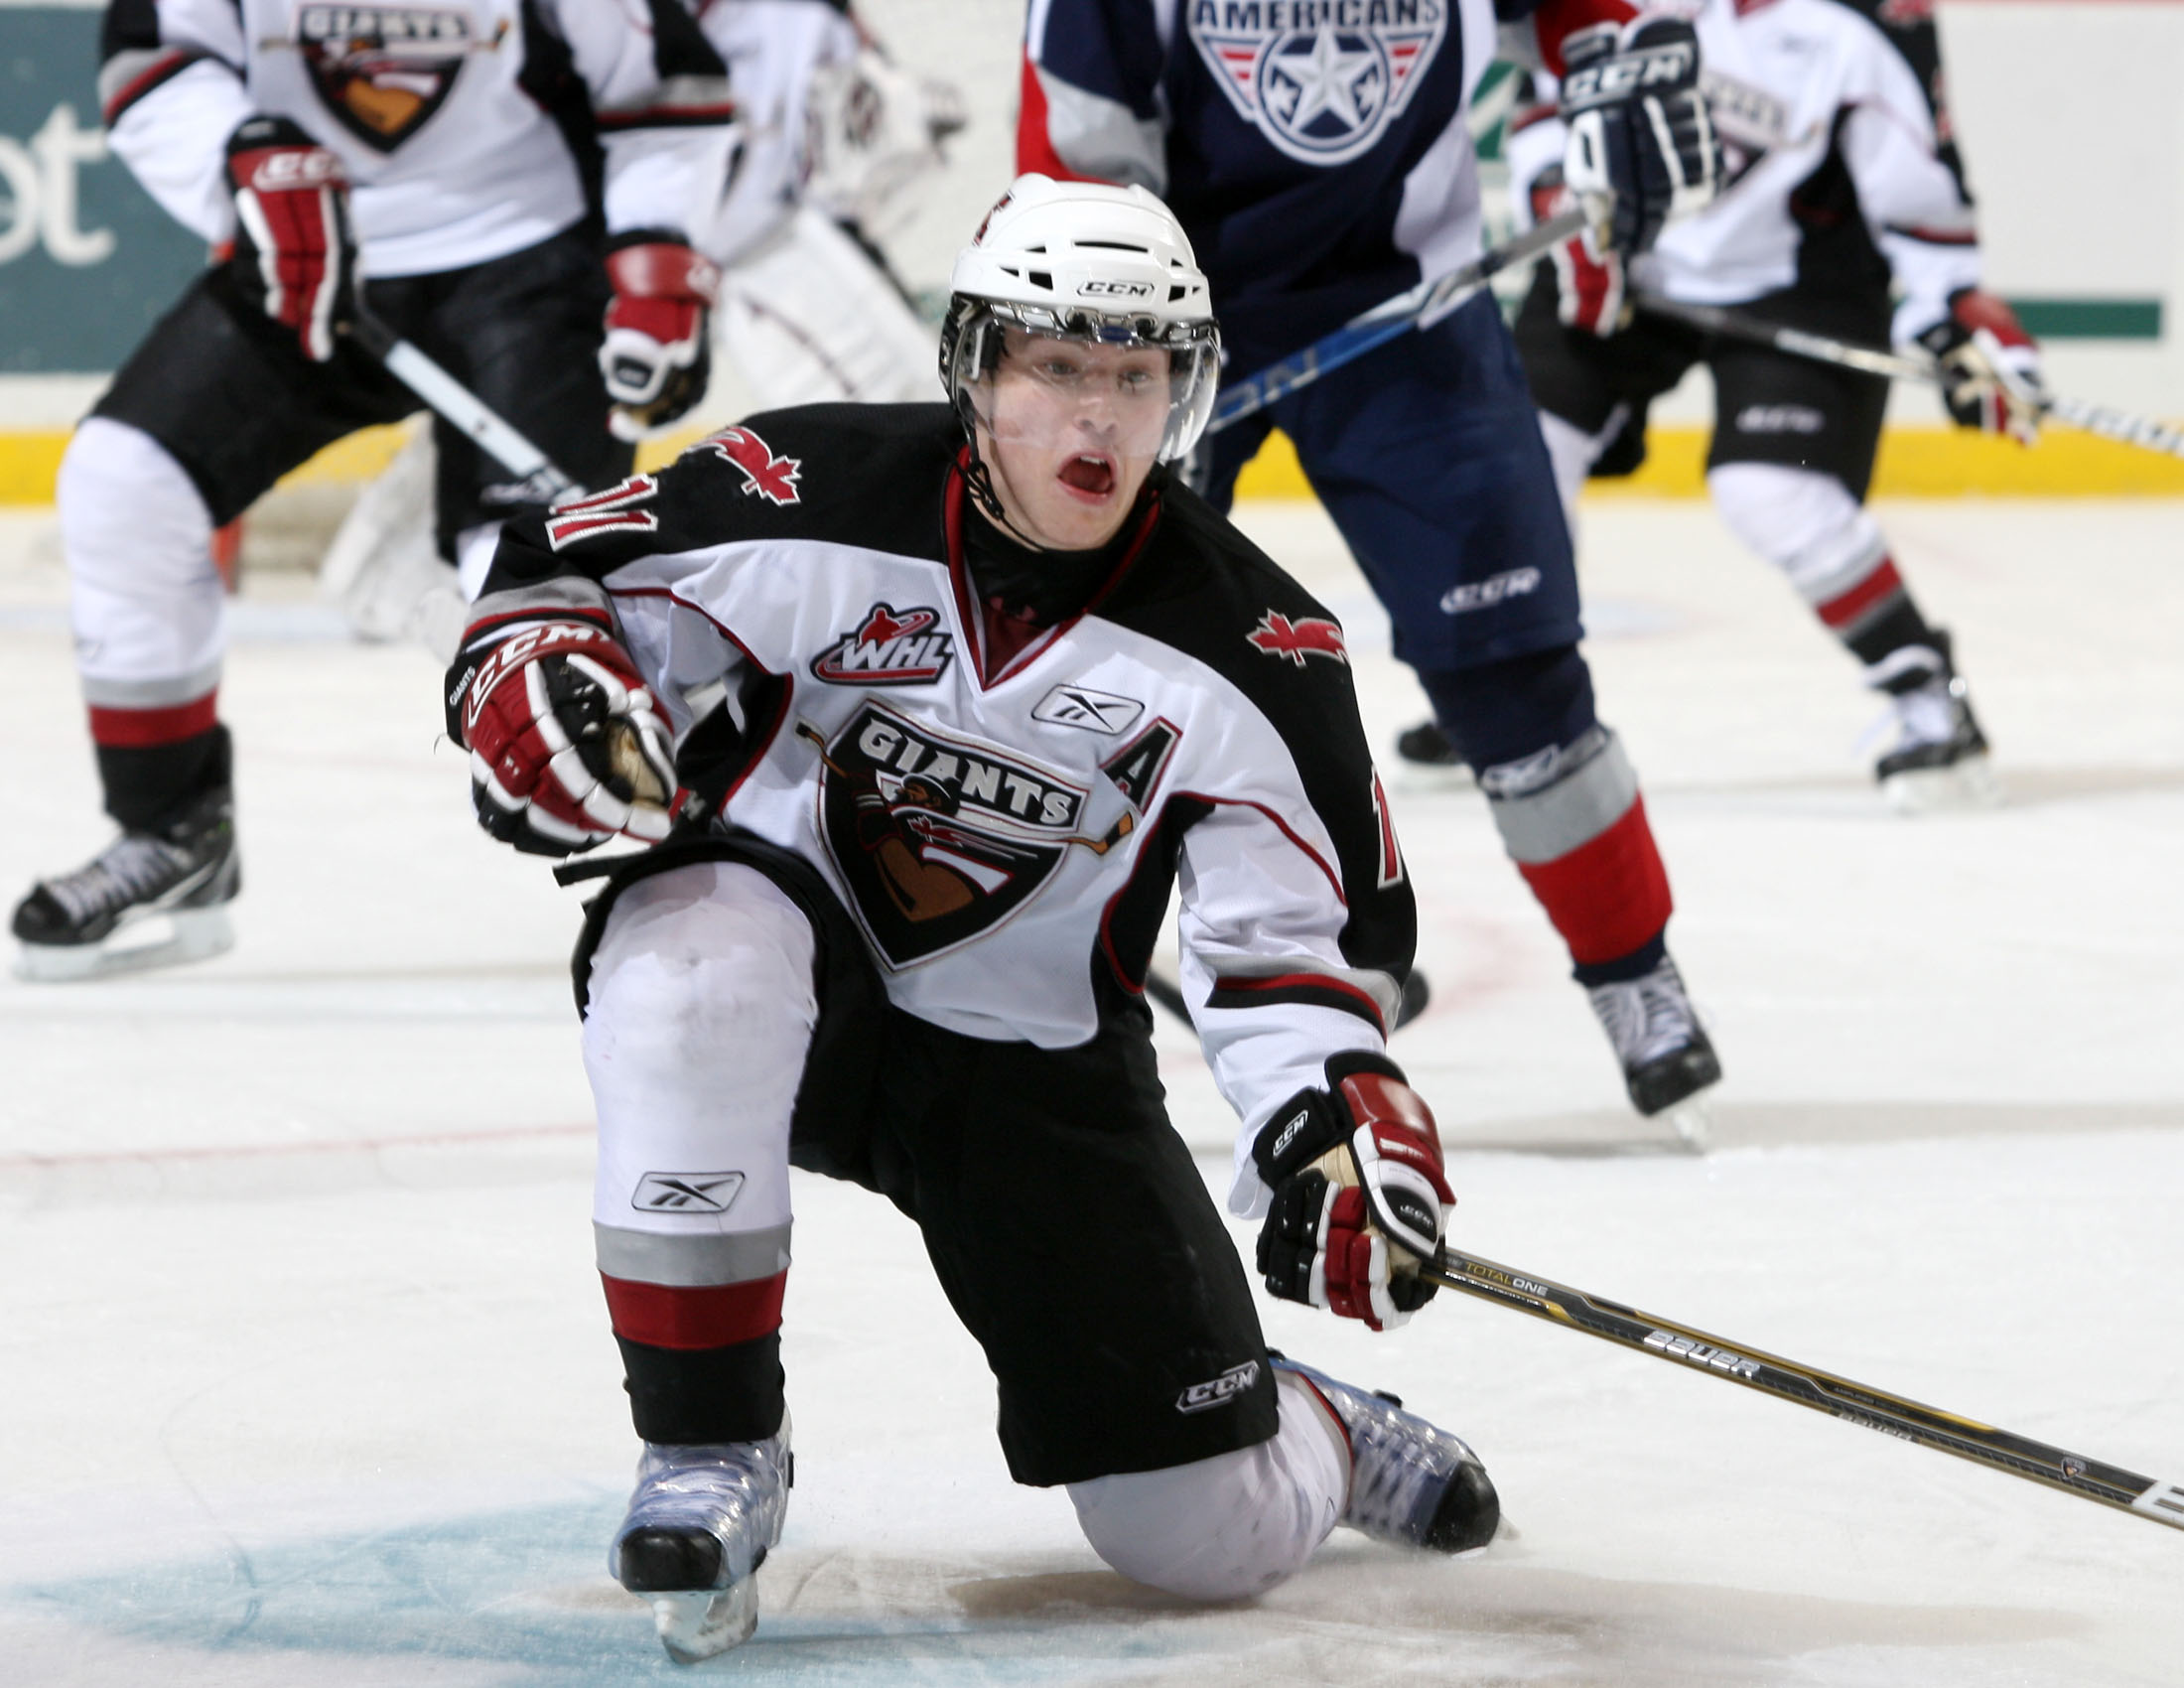 Brendan Gallagher Named Whl Player Of The Week Vancouver Giants